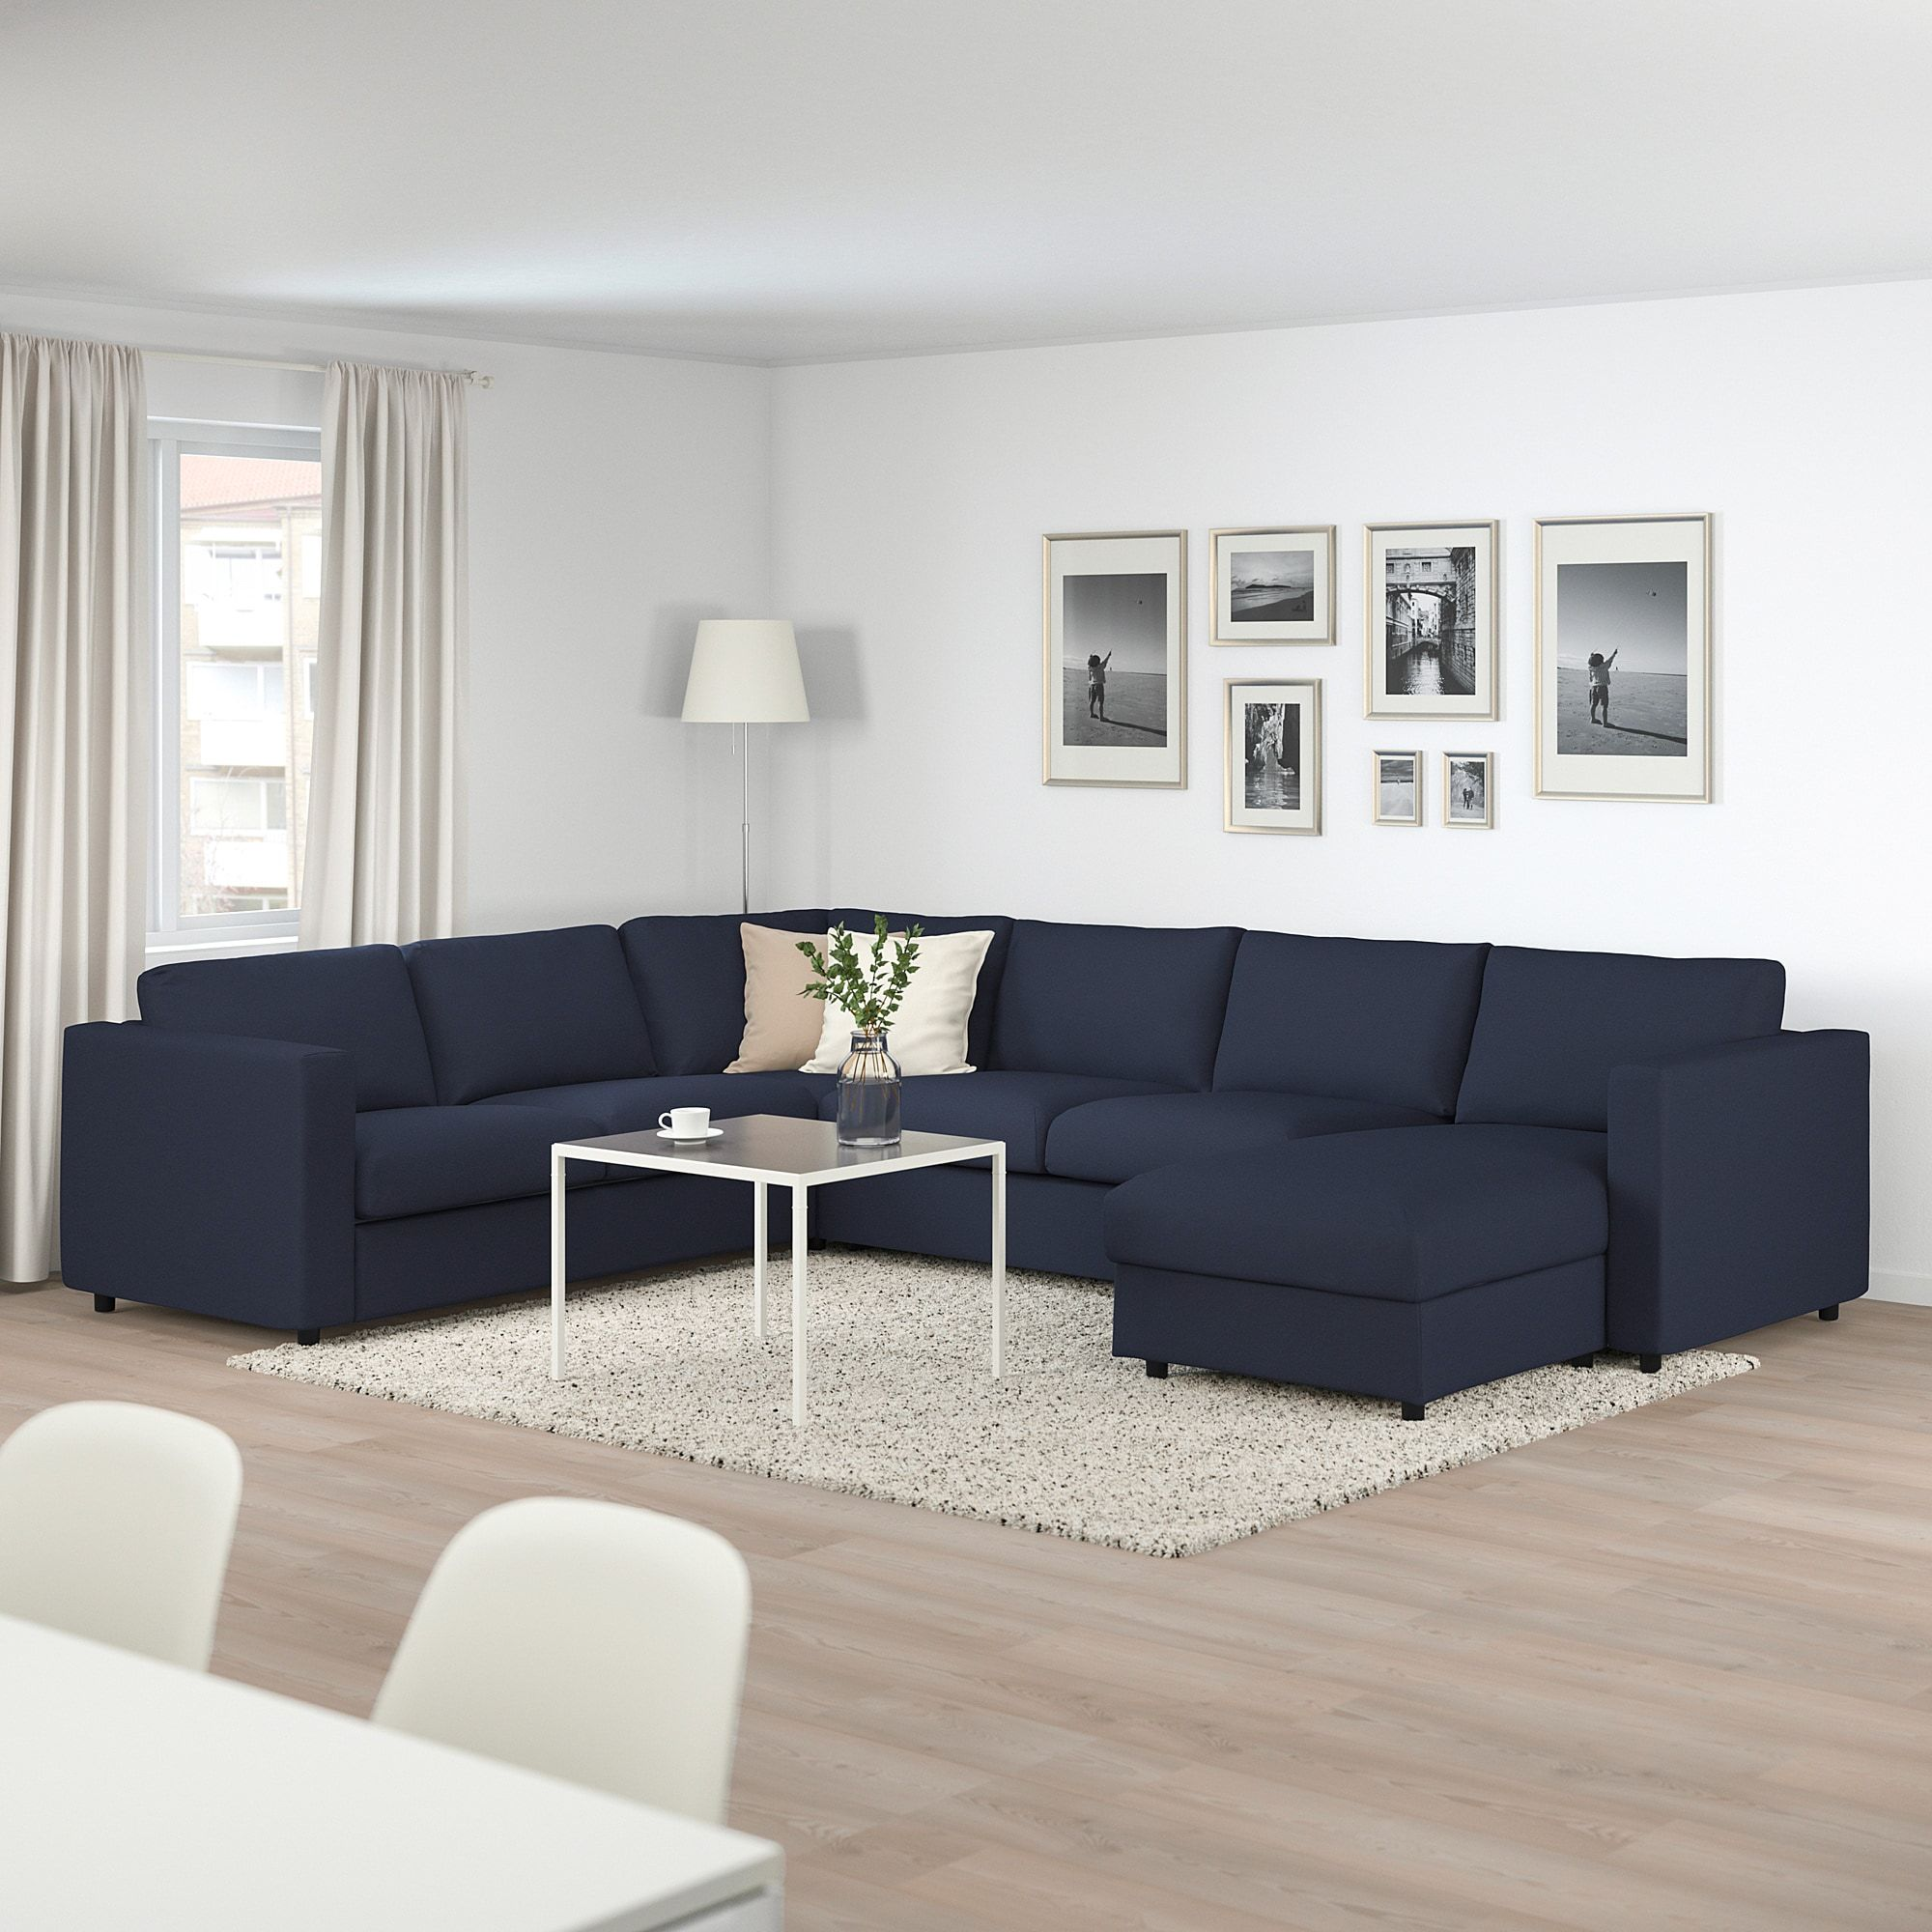 - IKEA - VIMLE Corner Sofabed W/chaise With Chaise, Orrsta Black